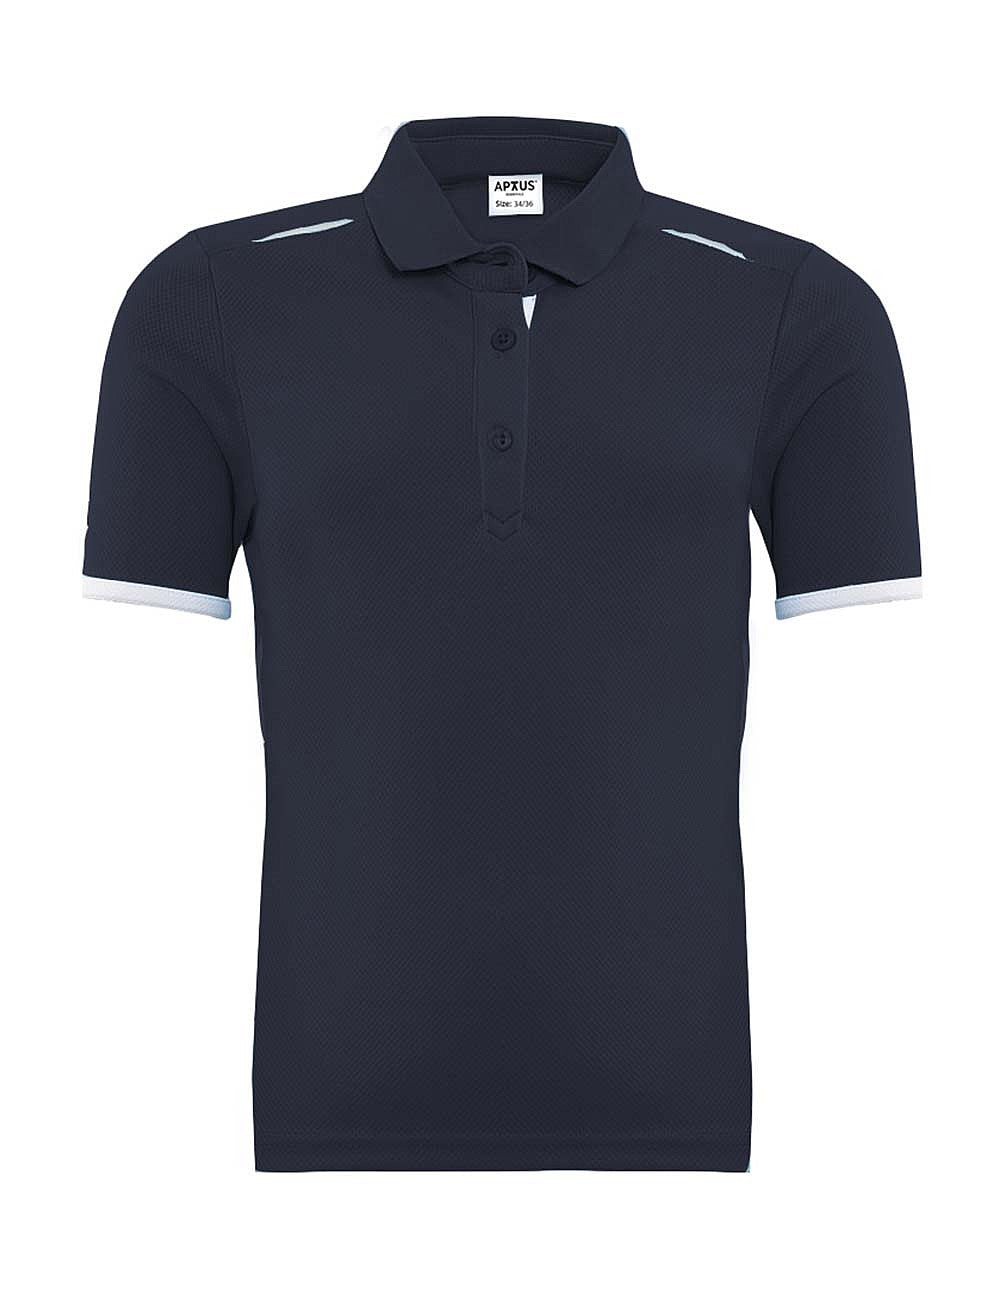 Eskdale School Embroidered PE Polo Shirt - Girls